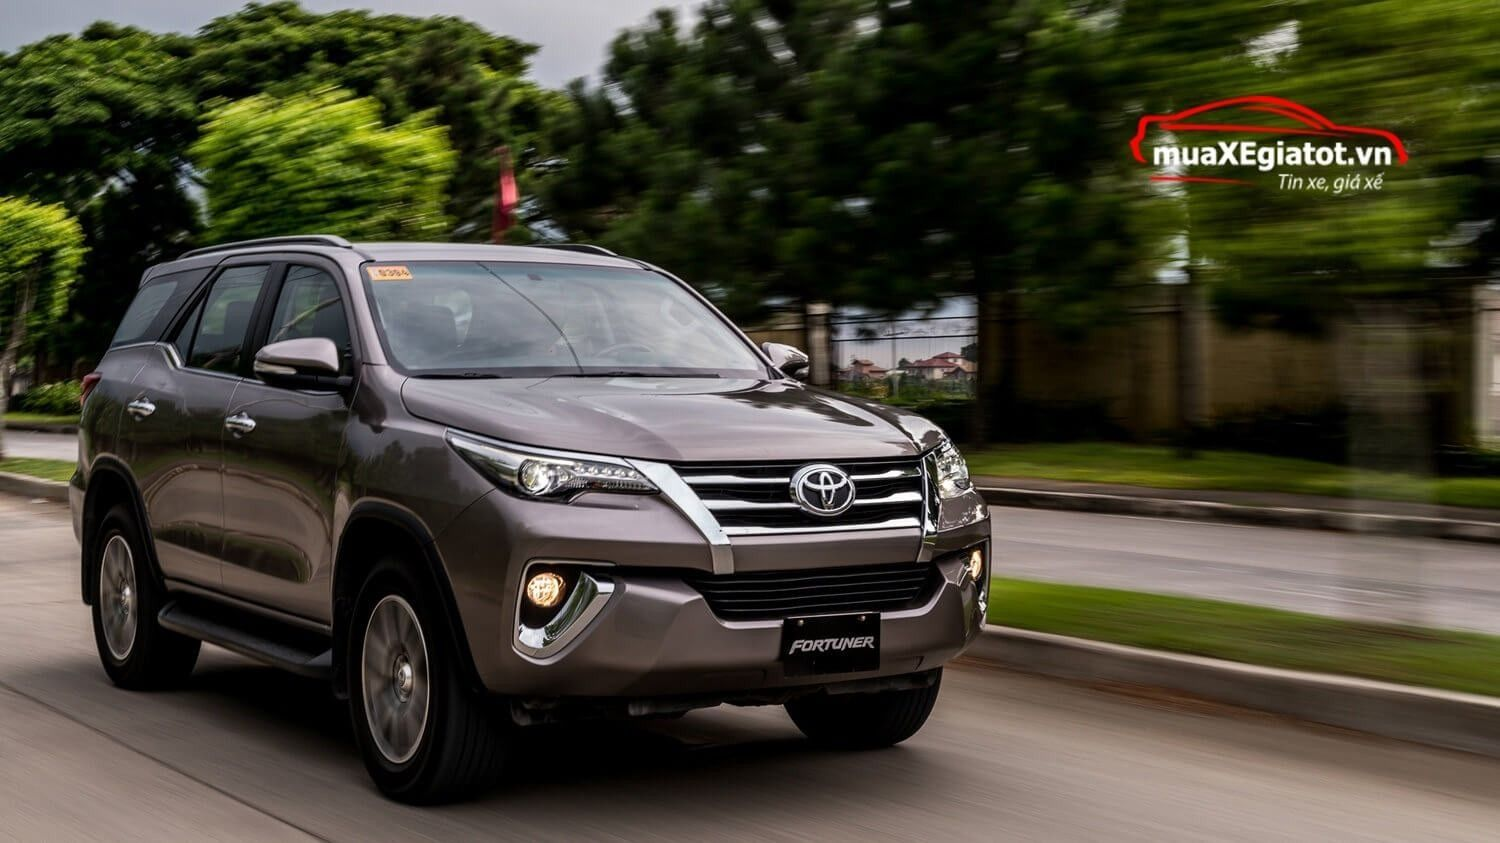 The Toyota Fortuner 2019 Rumors - 2017 Toyota Fortuner V Philippines , HD Wallpaper & Backgrounds